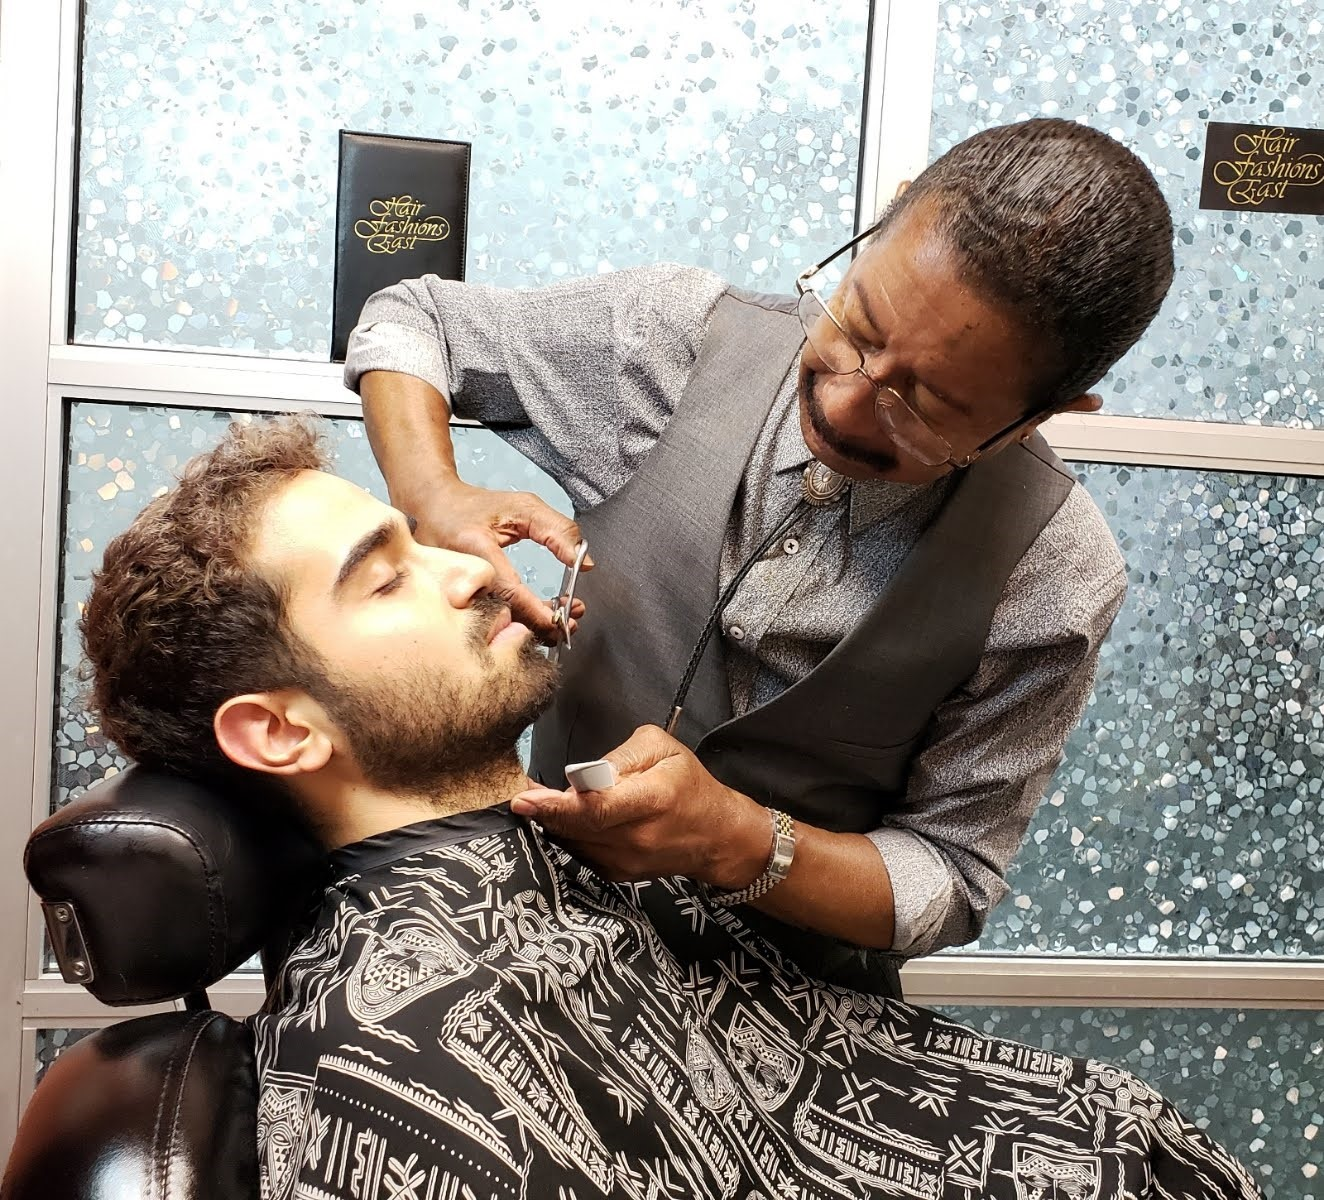 George's Hair Fashions East Beard Shaping Services